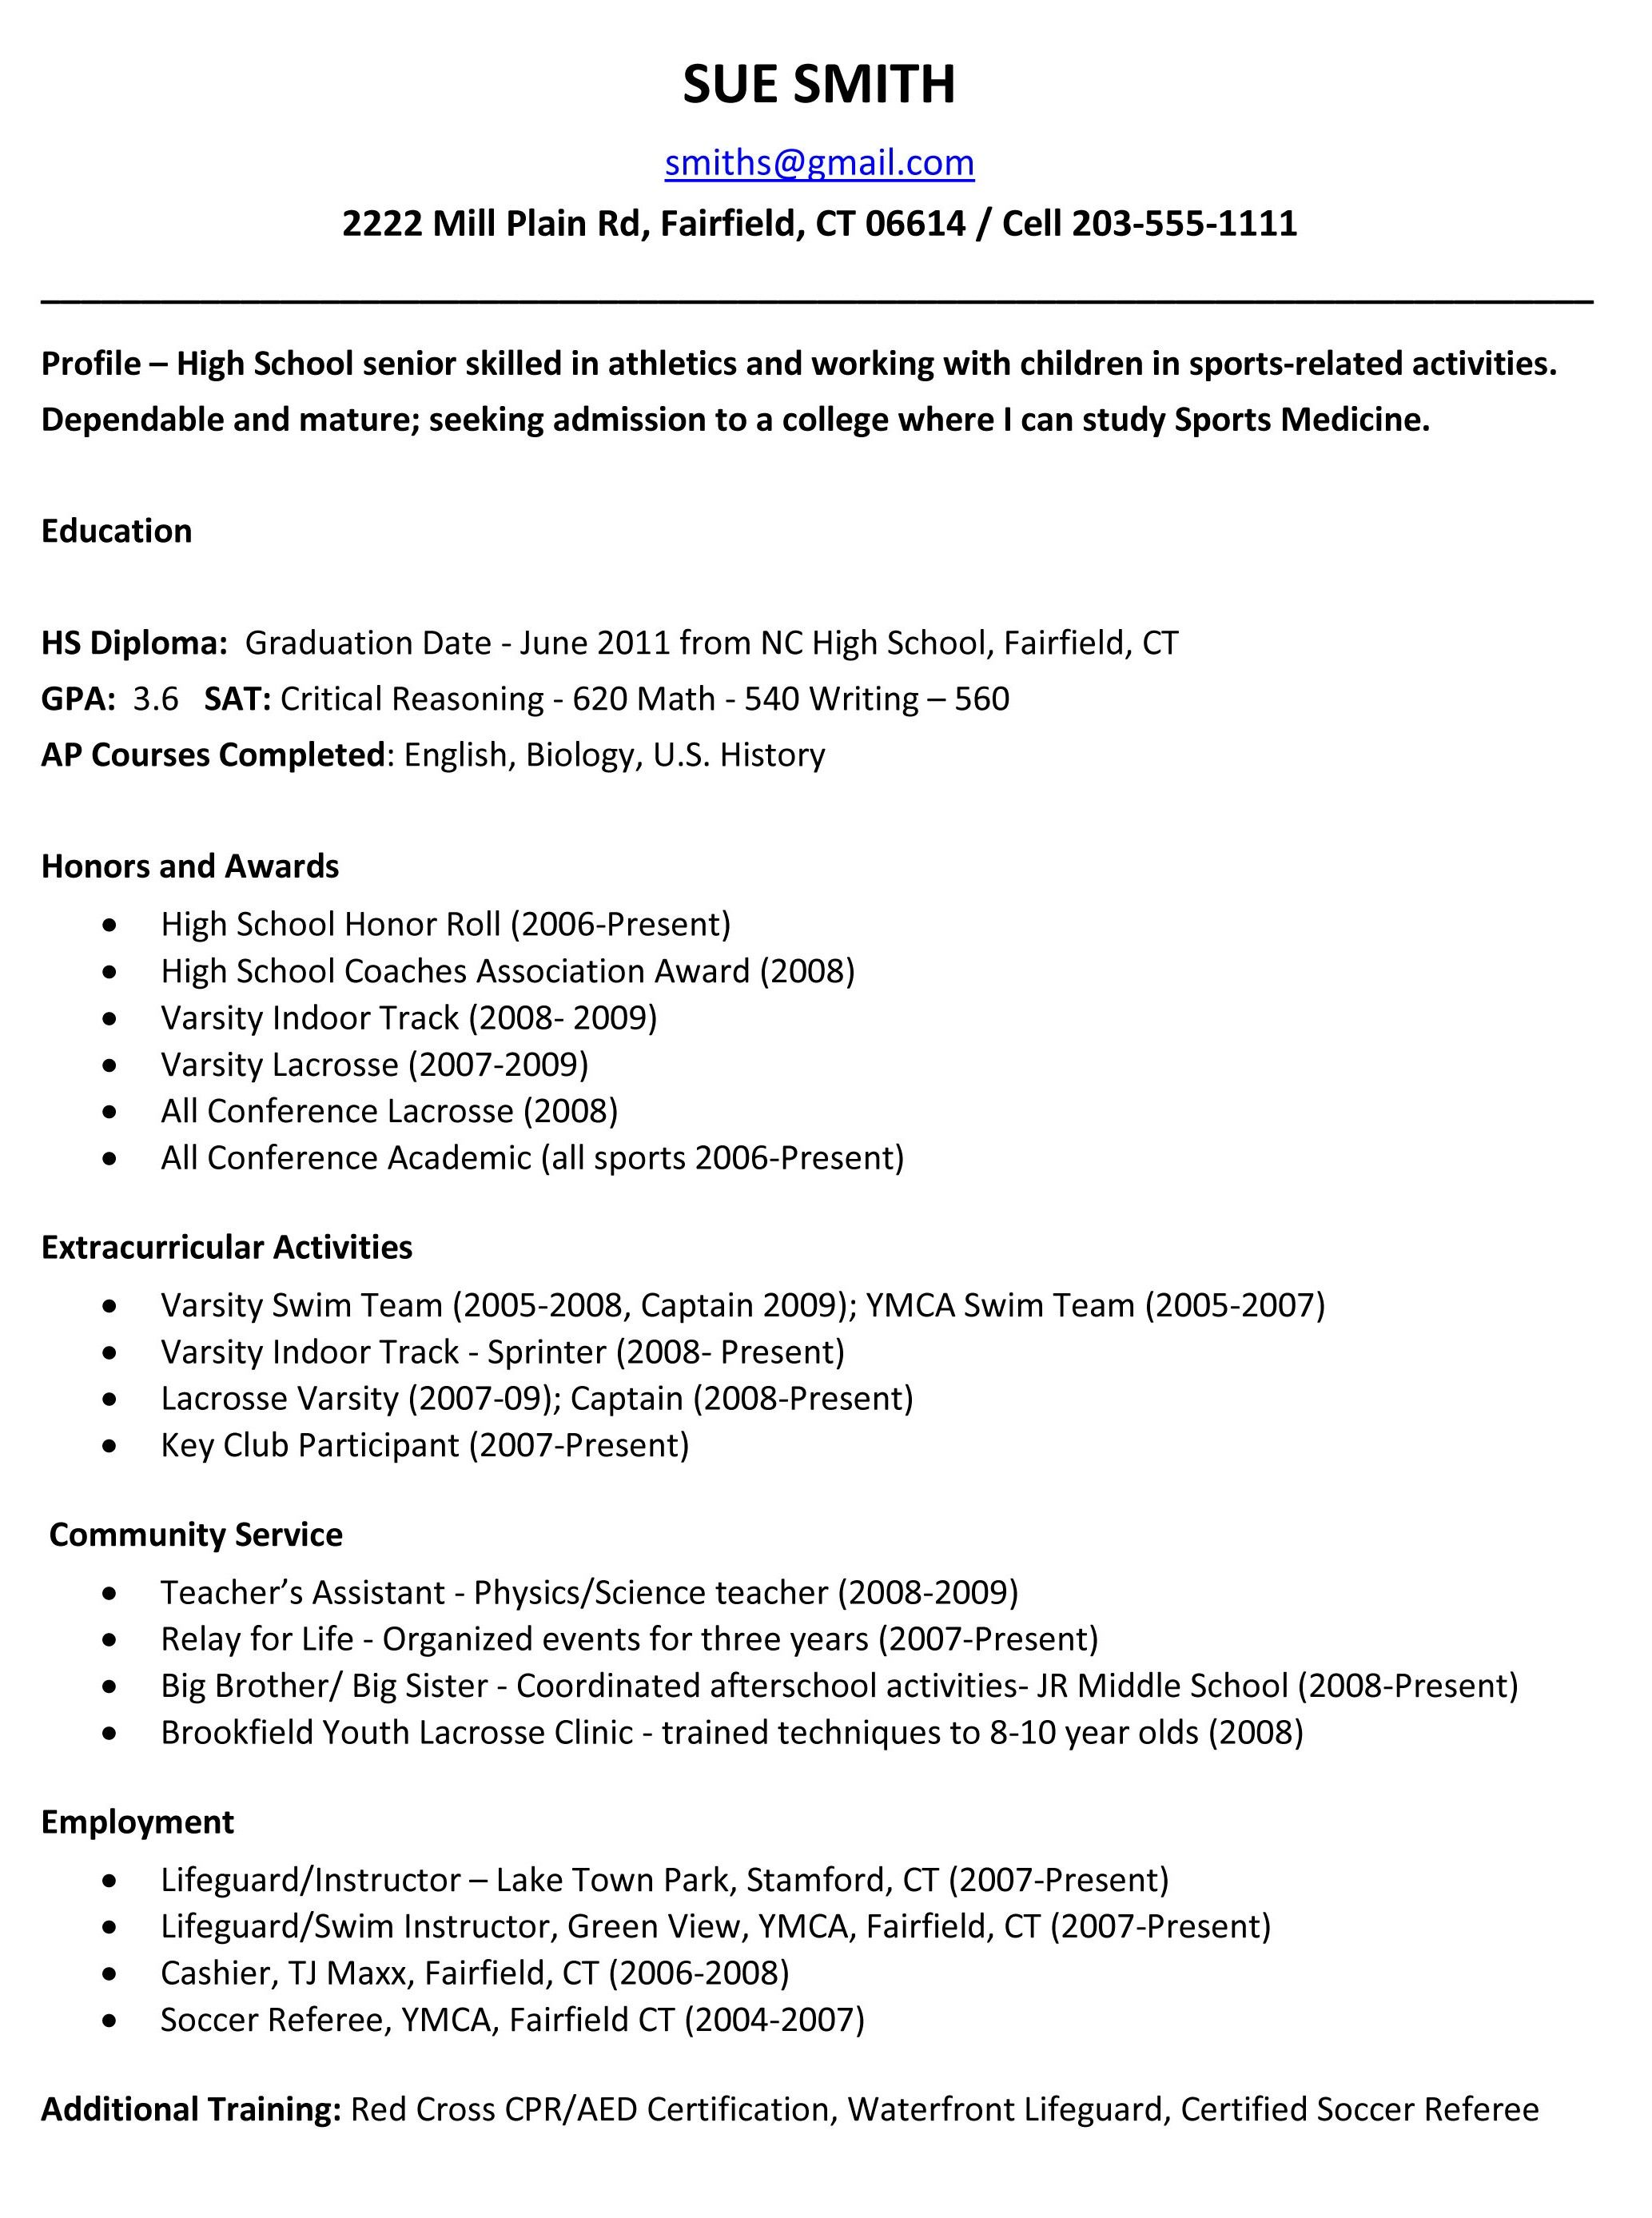 Example Resume For High School Students For College Applications School  Resume Templateregularmidwesterners.com | Regularmidwesterners  Resume College Student